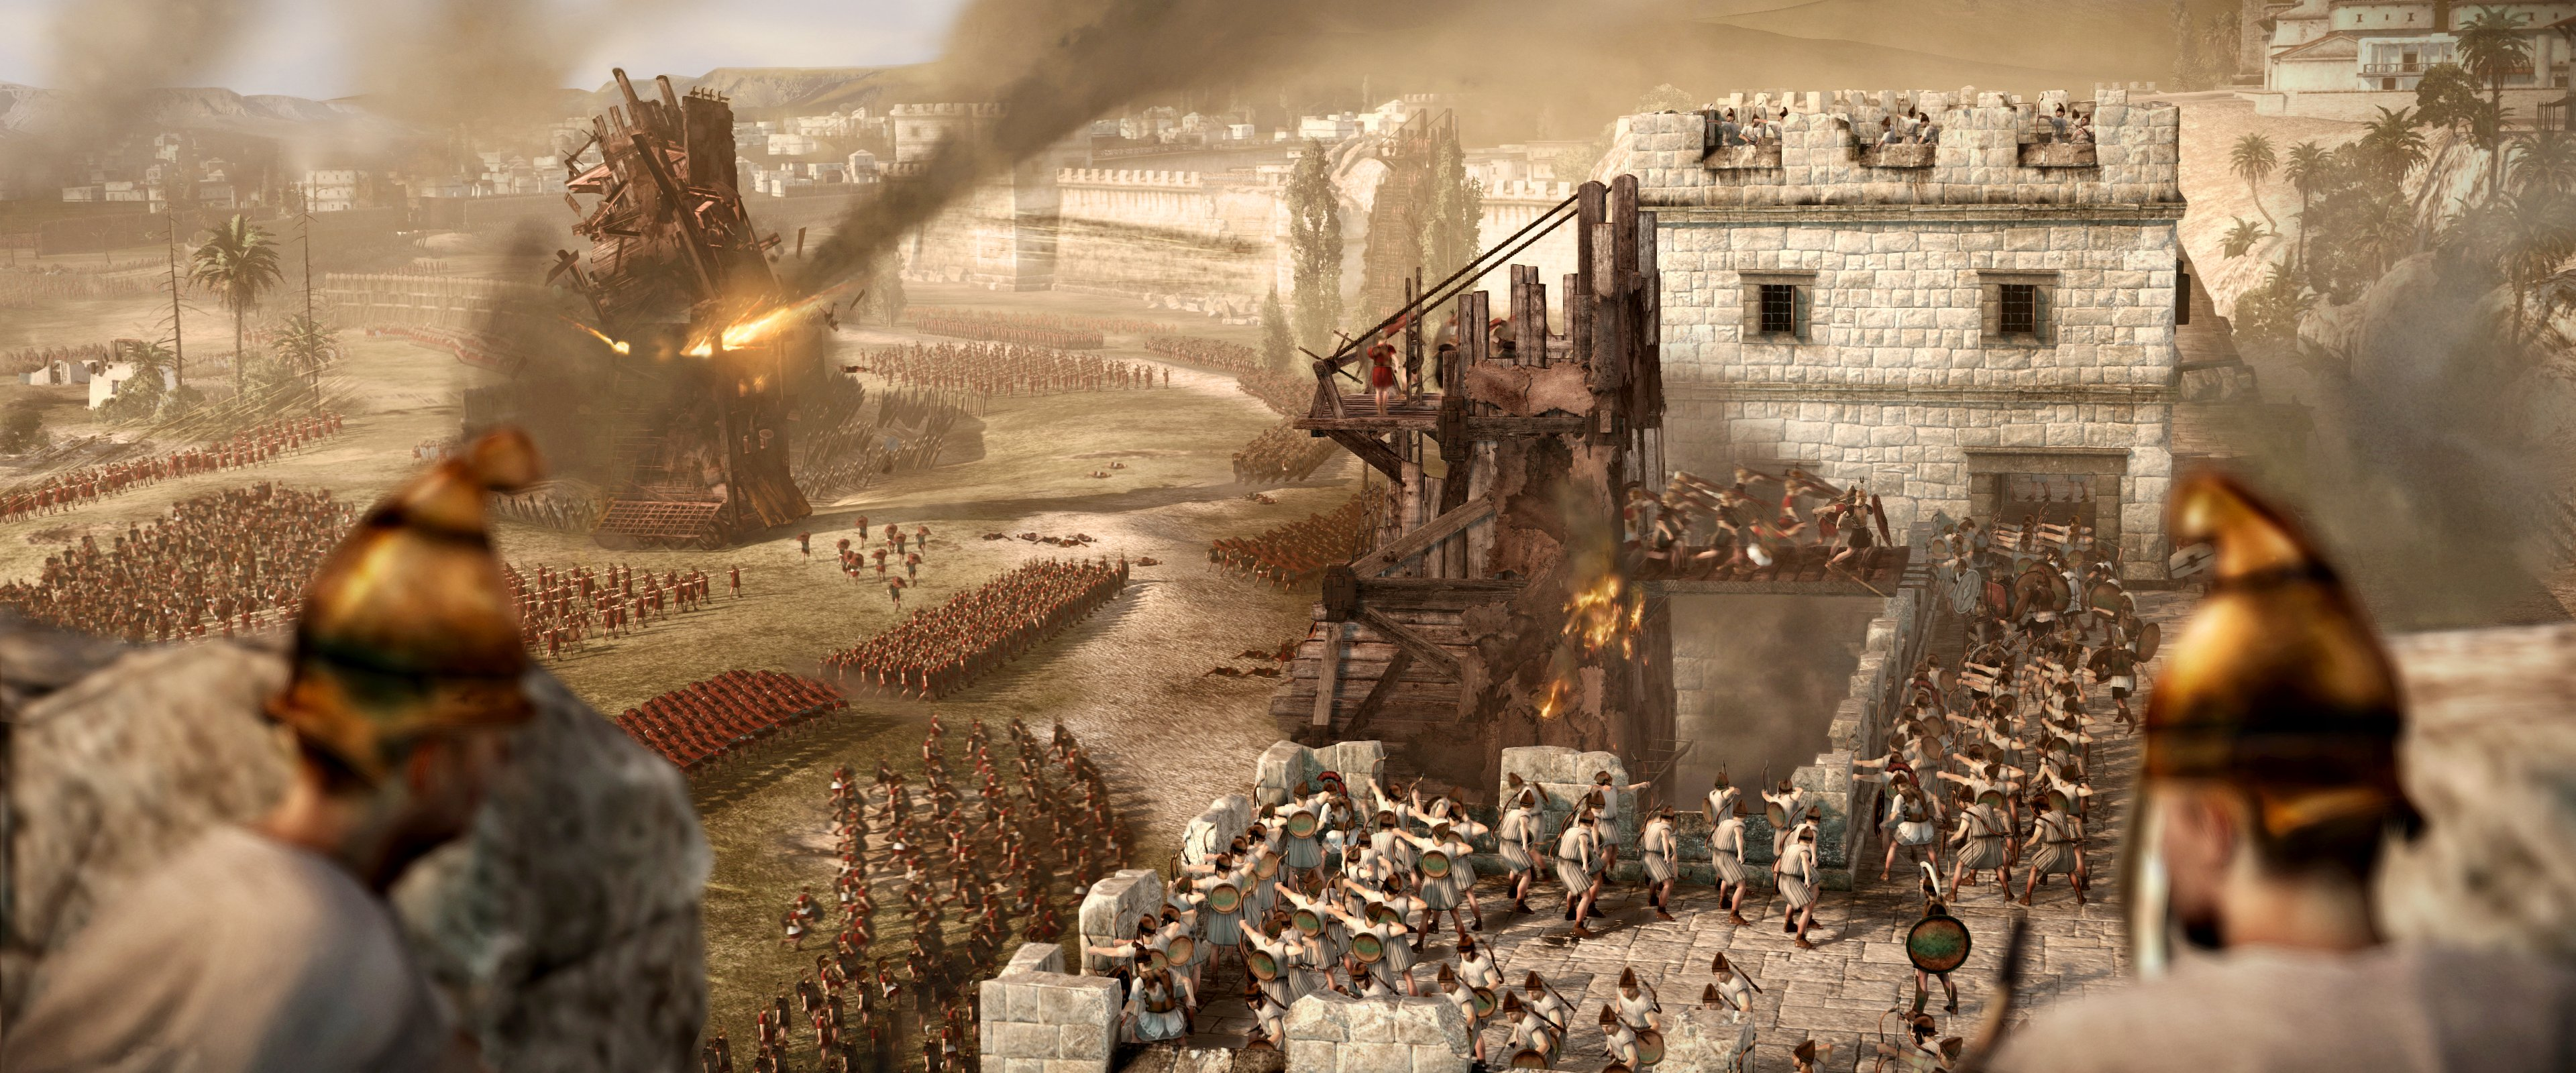 Total War Rome II Computer Wallpapers Desktop Backgrounds 3840x1600